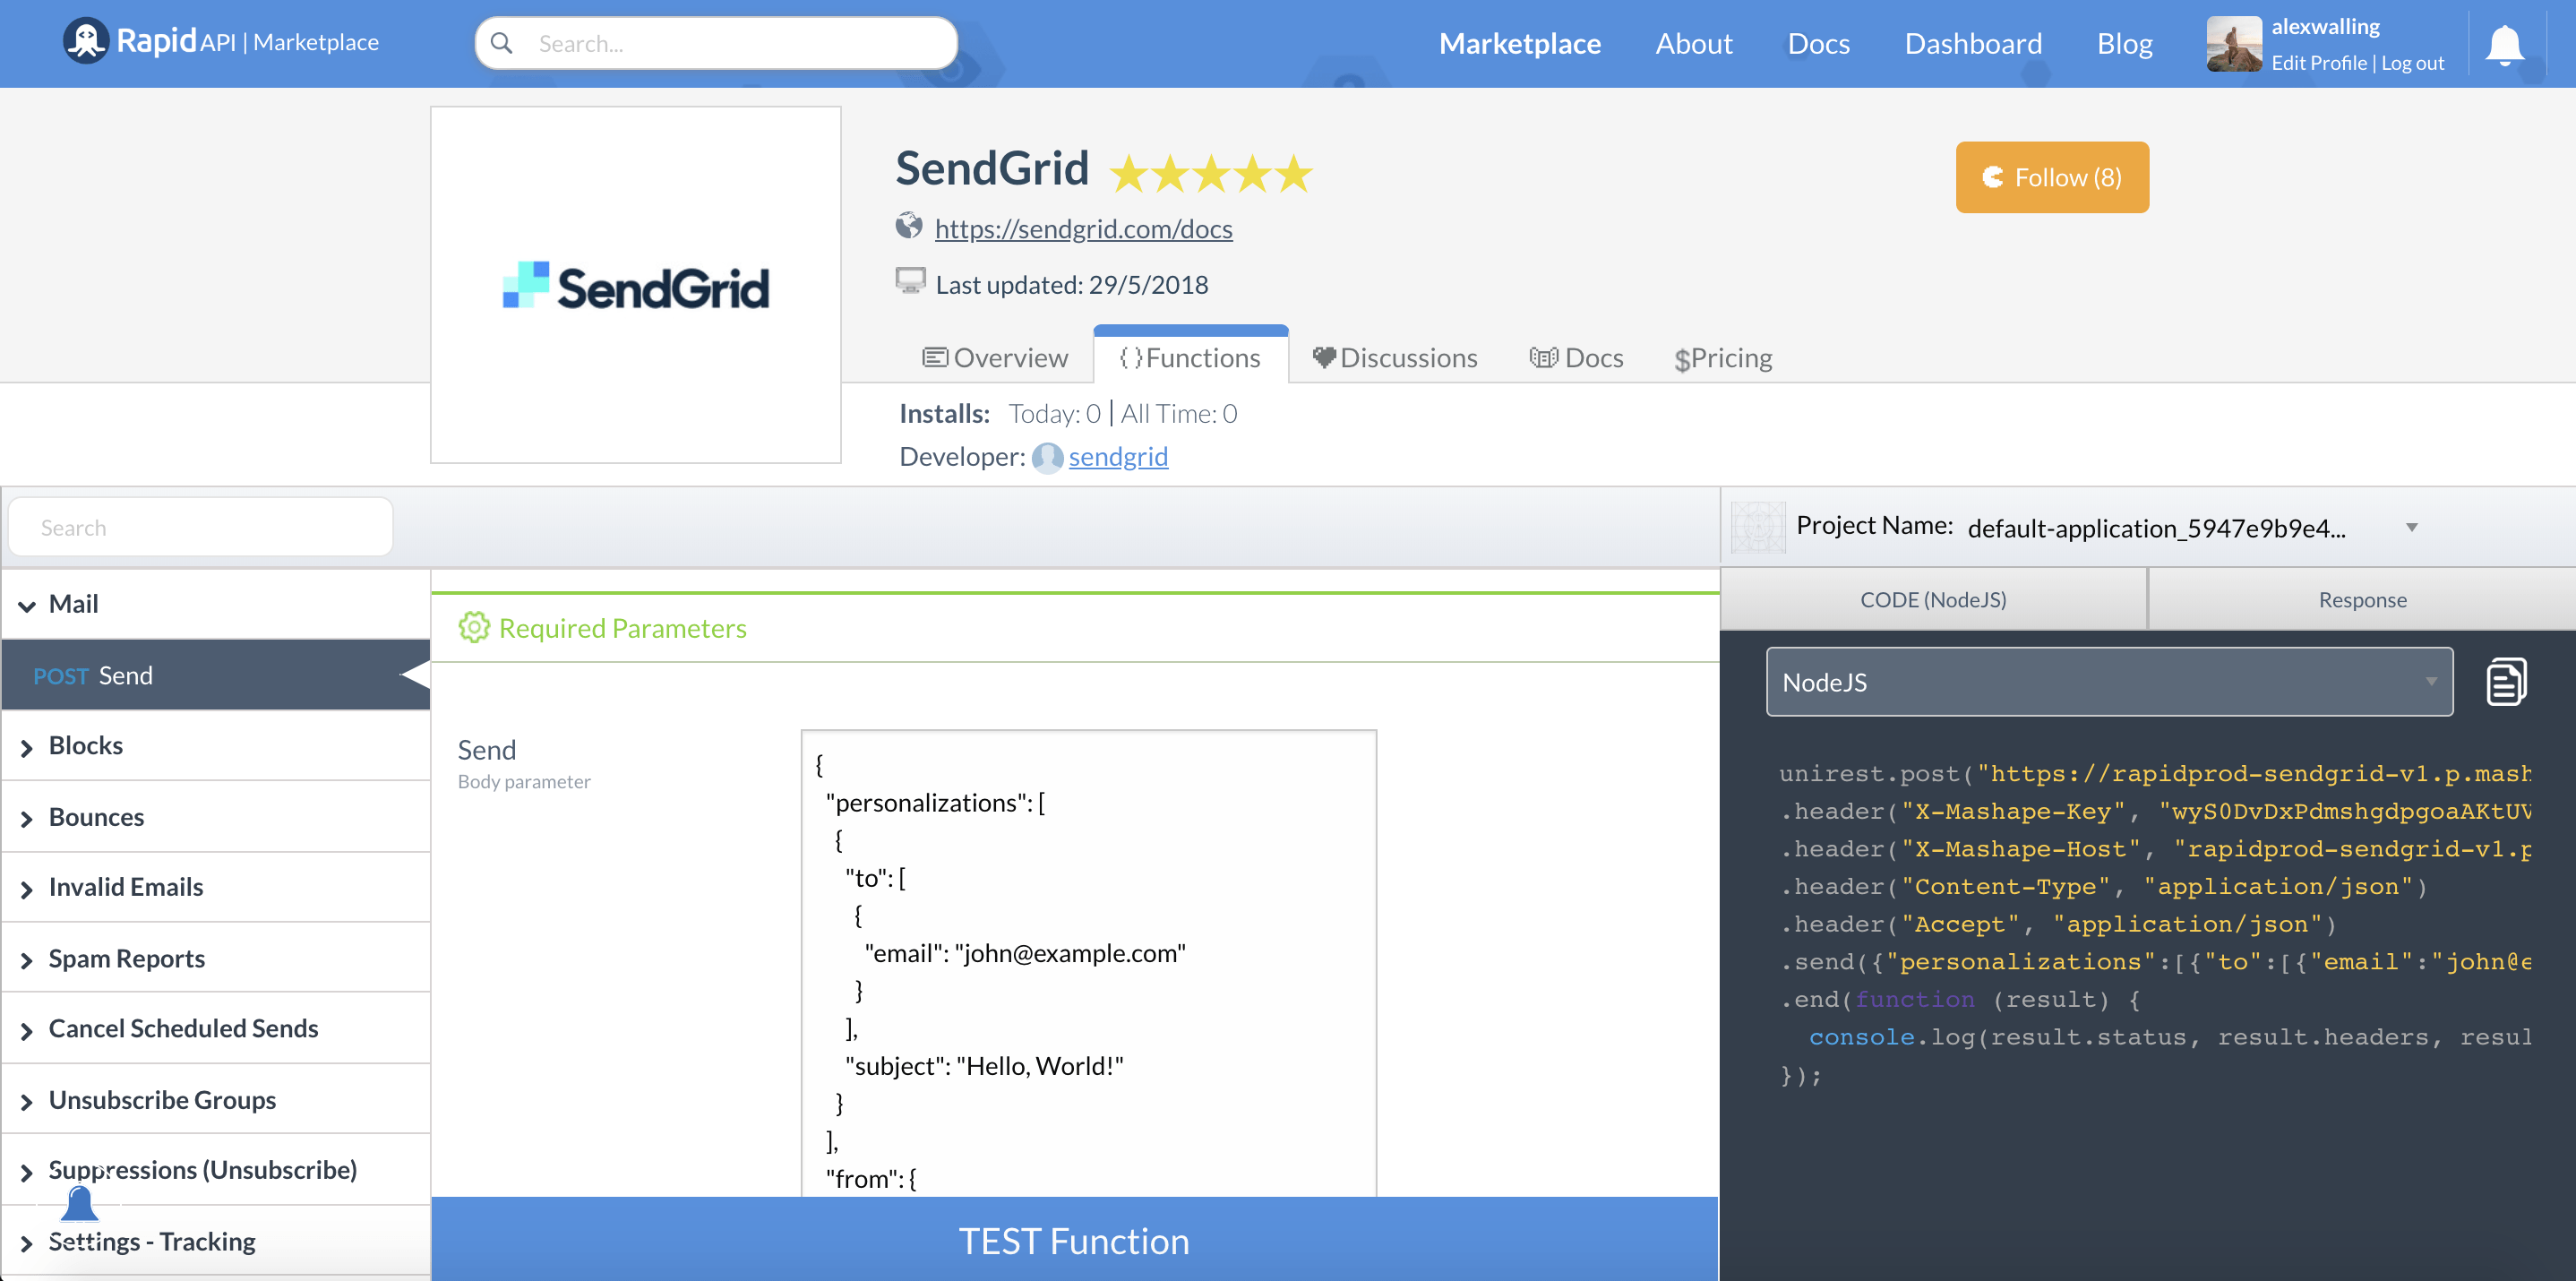 SendGrid send mail endpoint page on RapidAPI